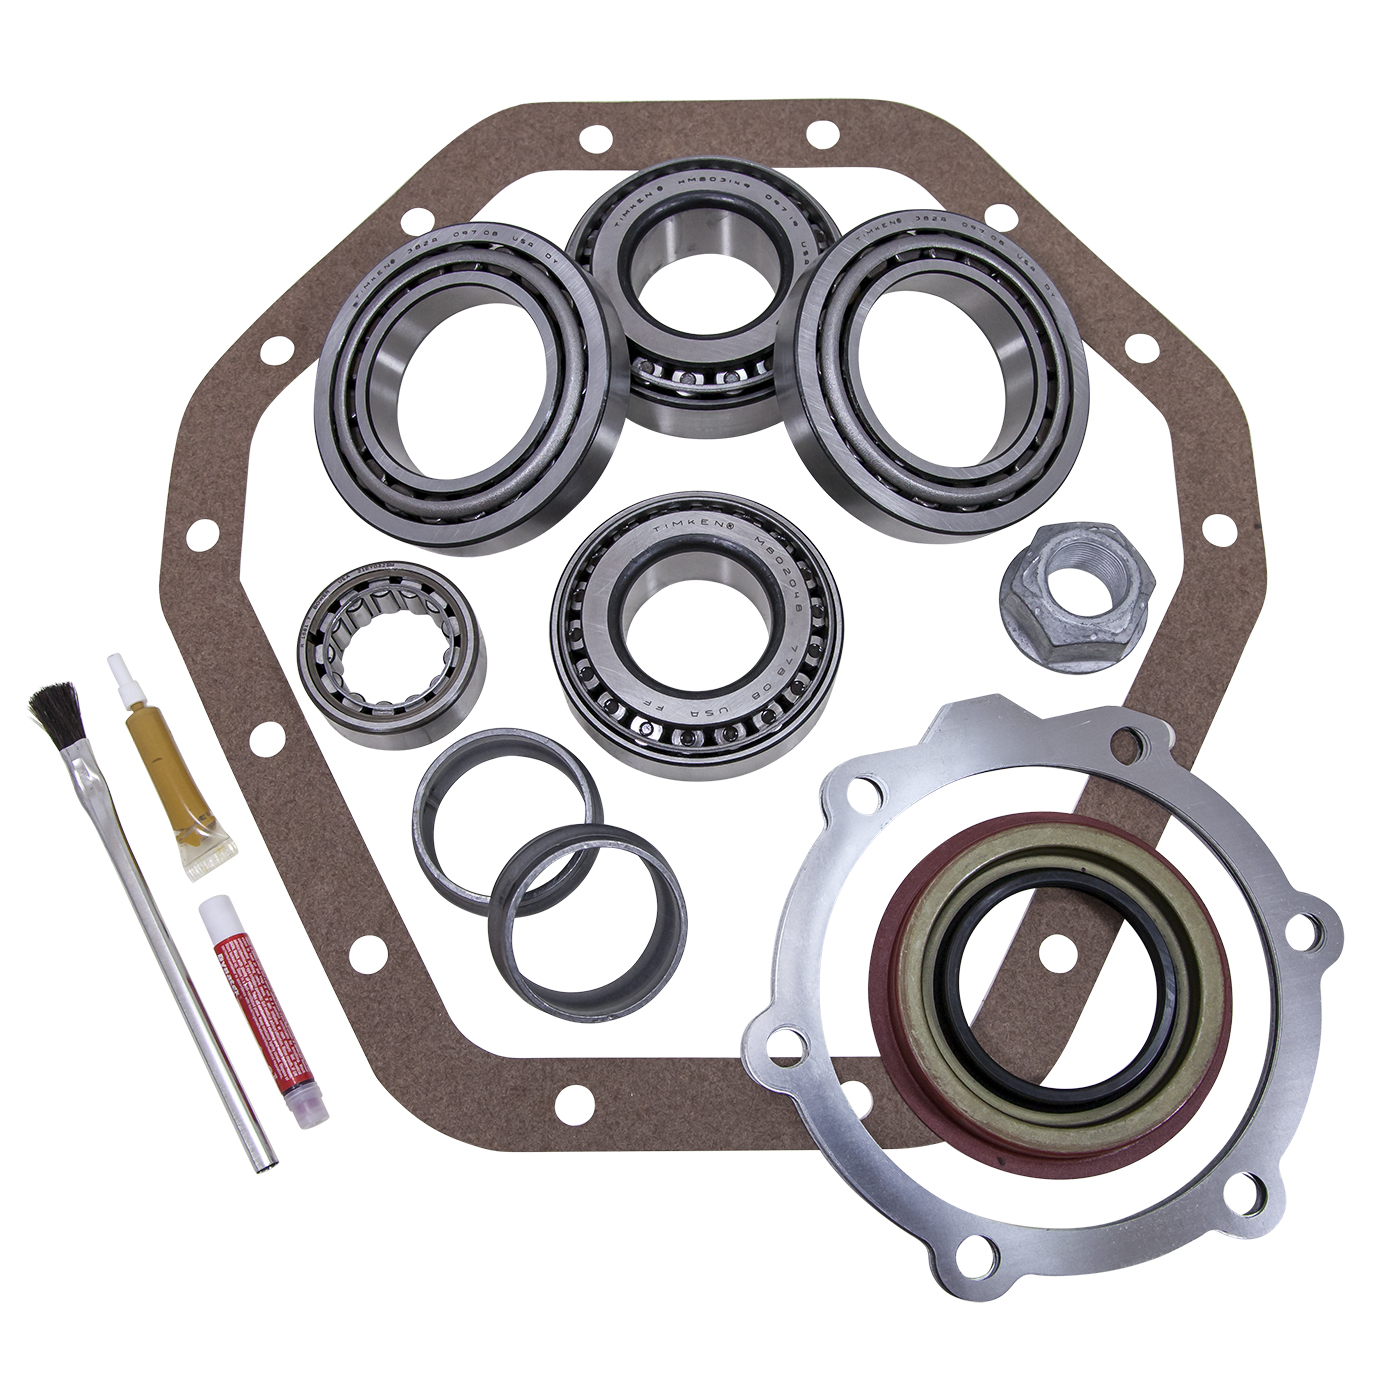 YK GM14T-A - Yukon Master Overhaul kit for GM '88 and older 14T differential